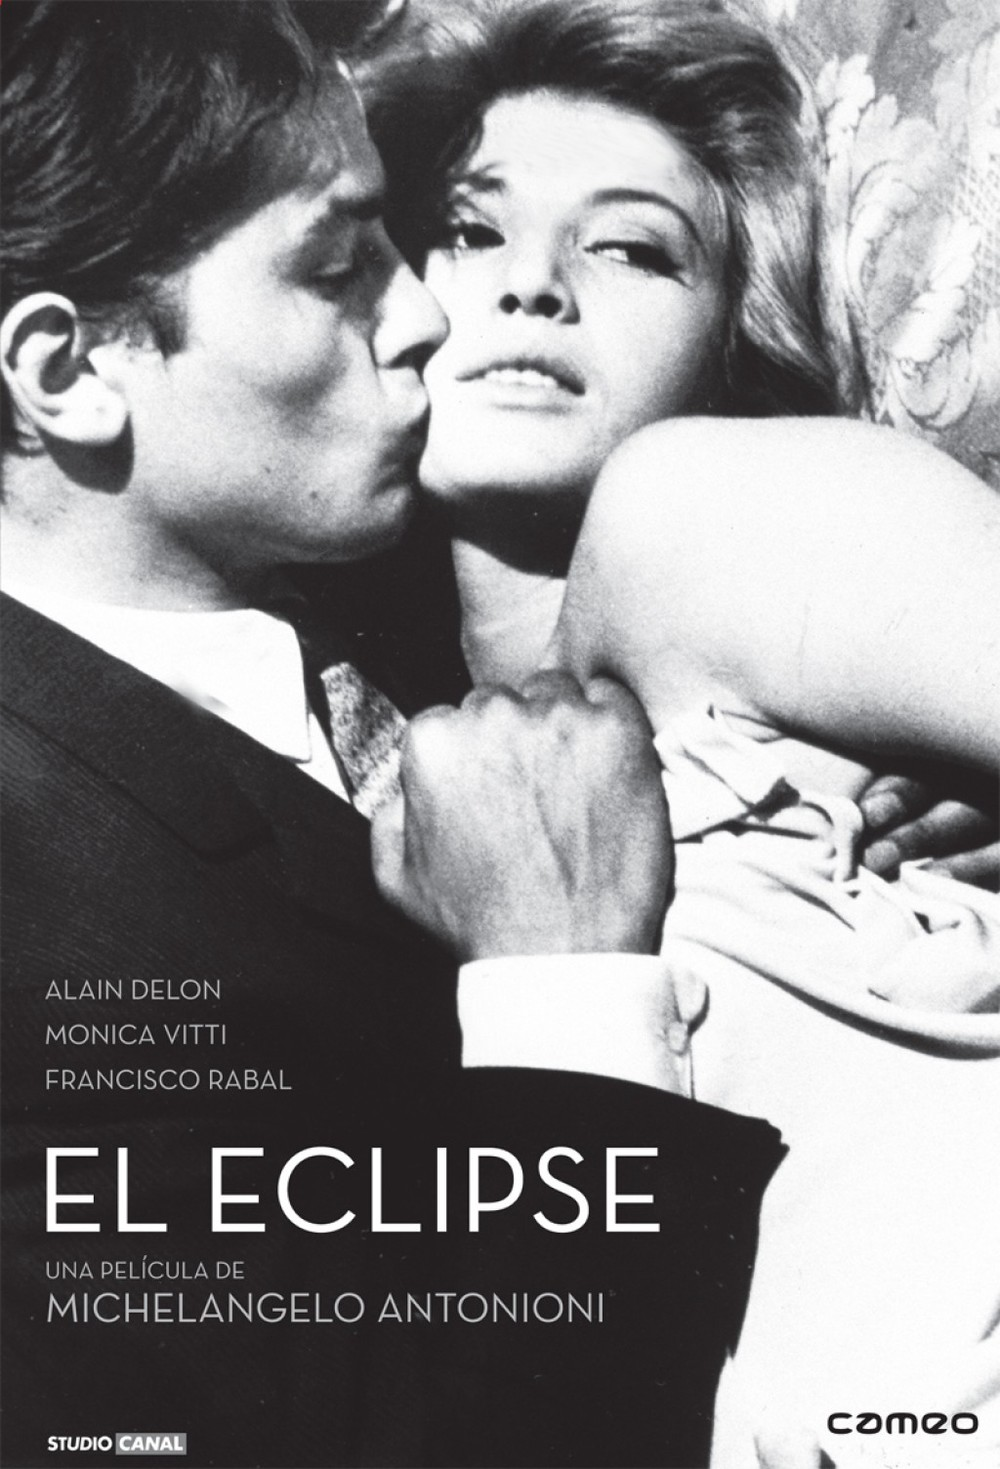 El Eclipse, Michelangelo Antonioni